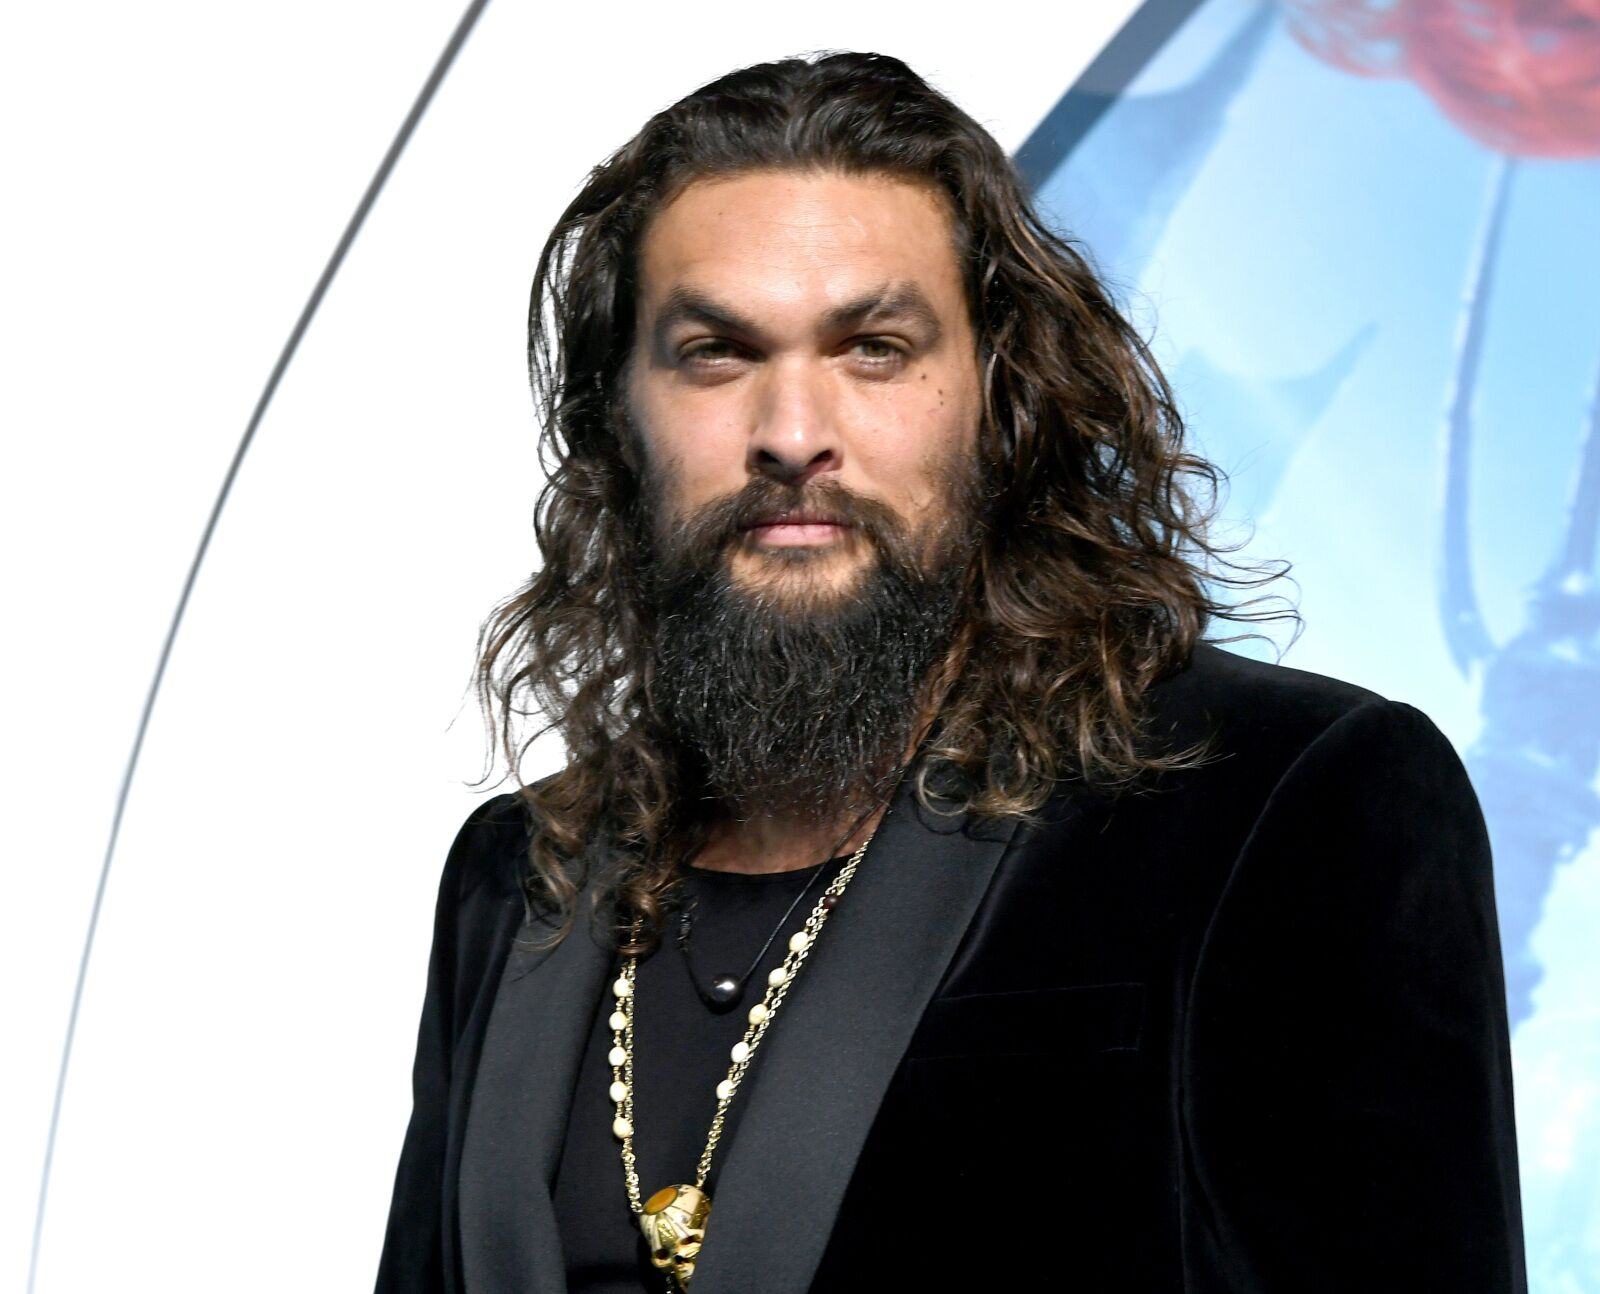 10 ways to watch Jason Momoa other than Game of Thrones